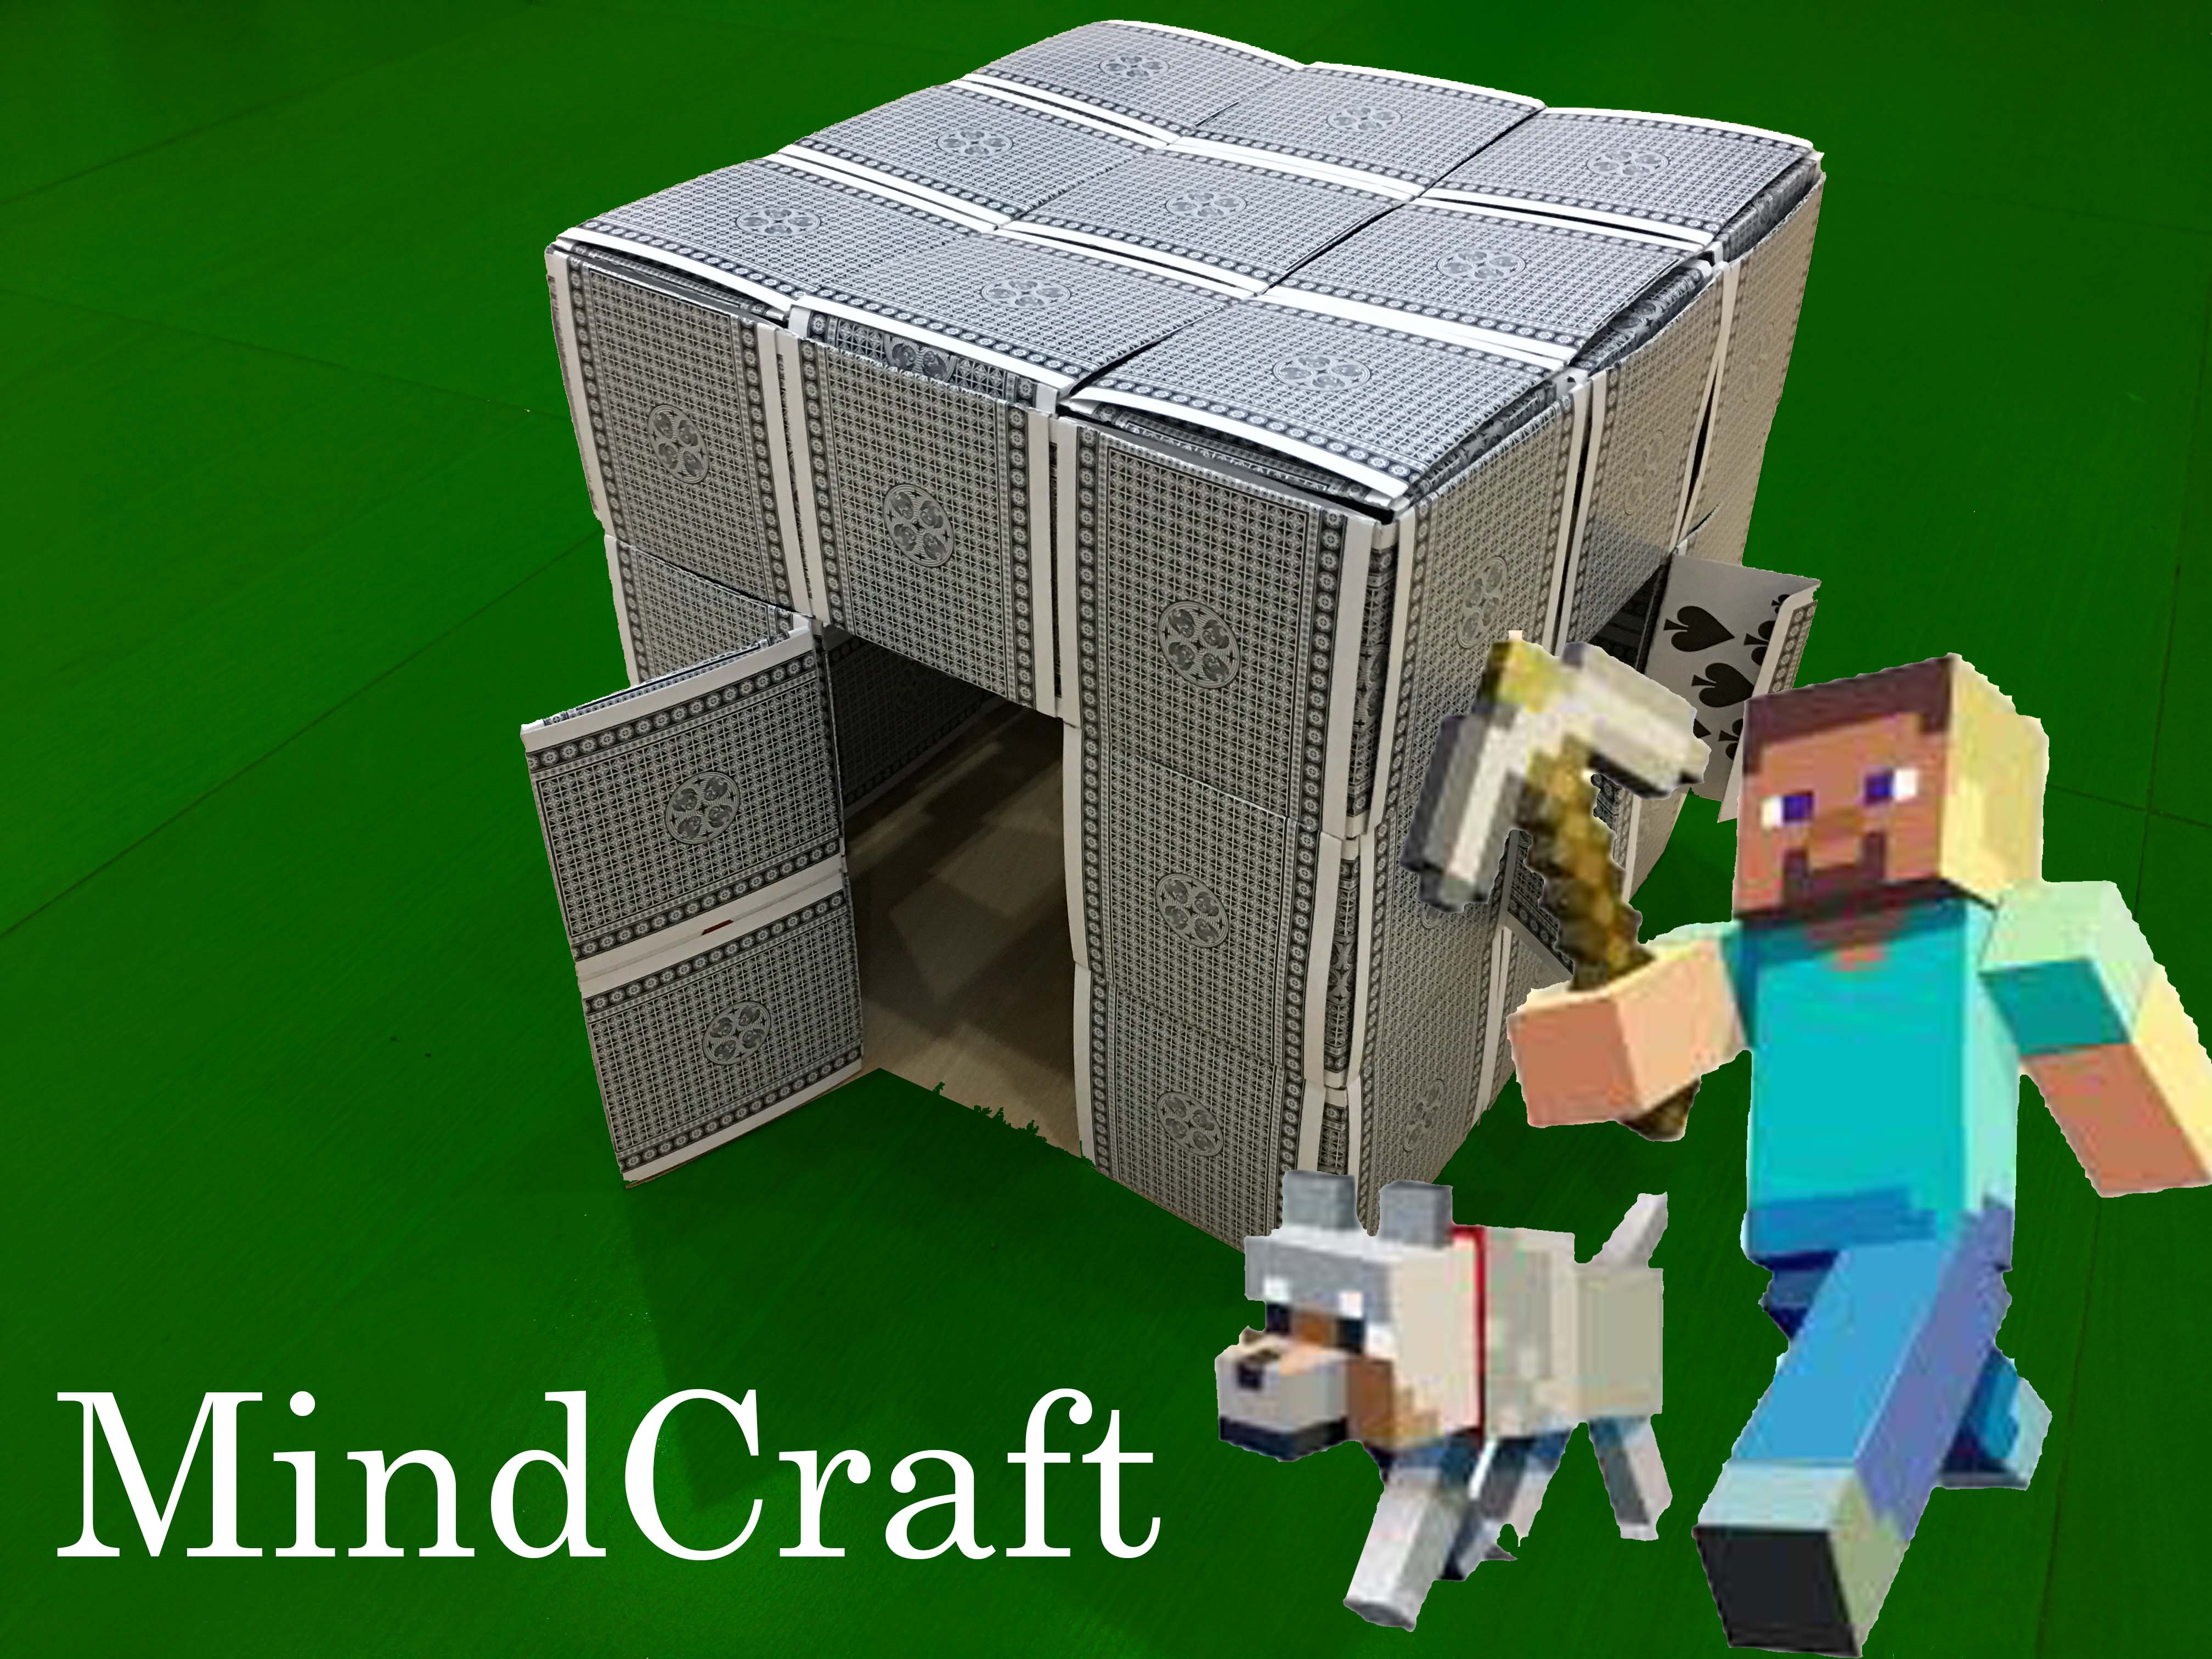 Picture of MindCraft (Create With Your Mind, Craft With Your Hands)